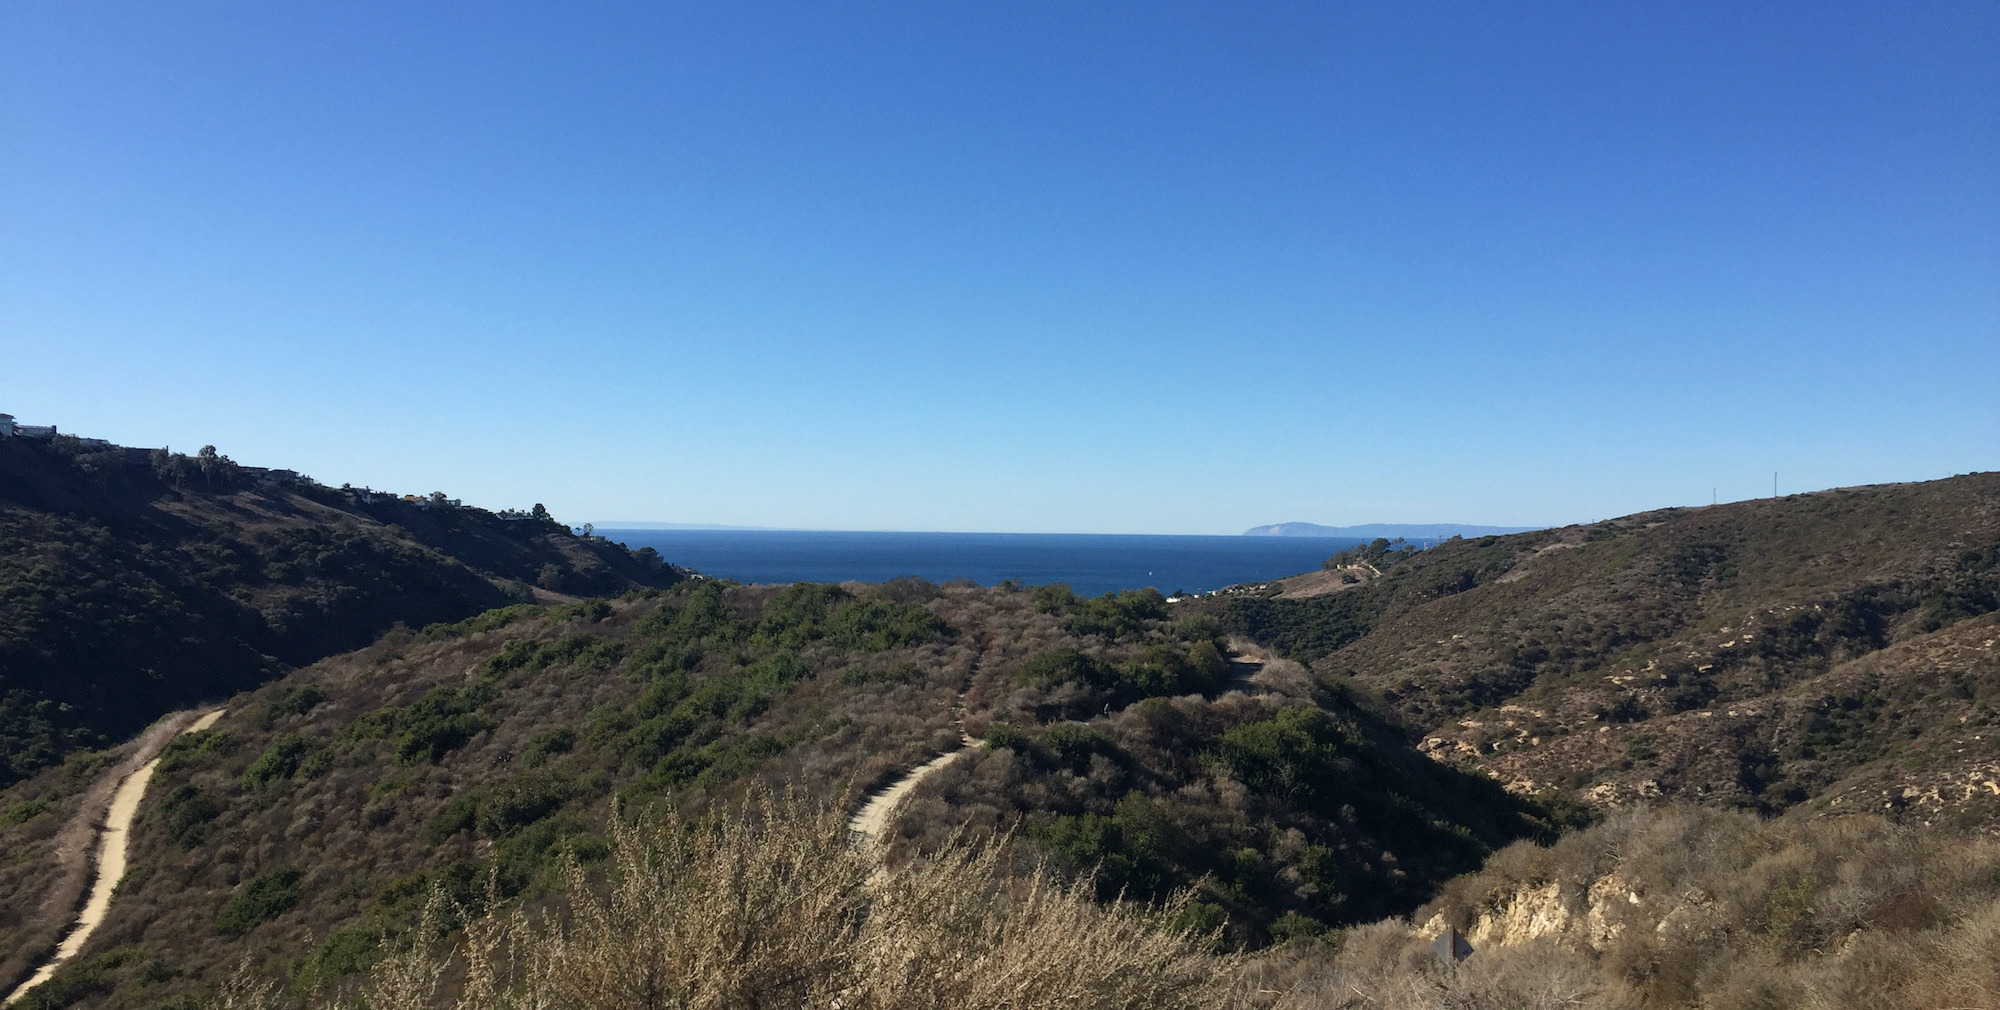 Perspective of the Pacific Ocean as we started hiking up